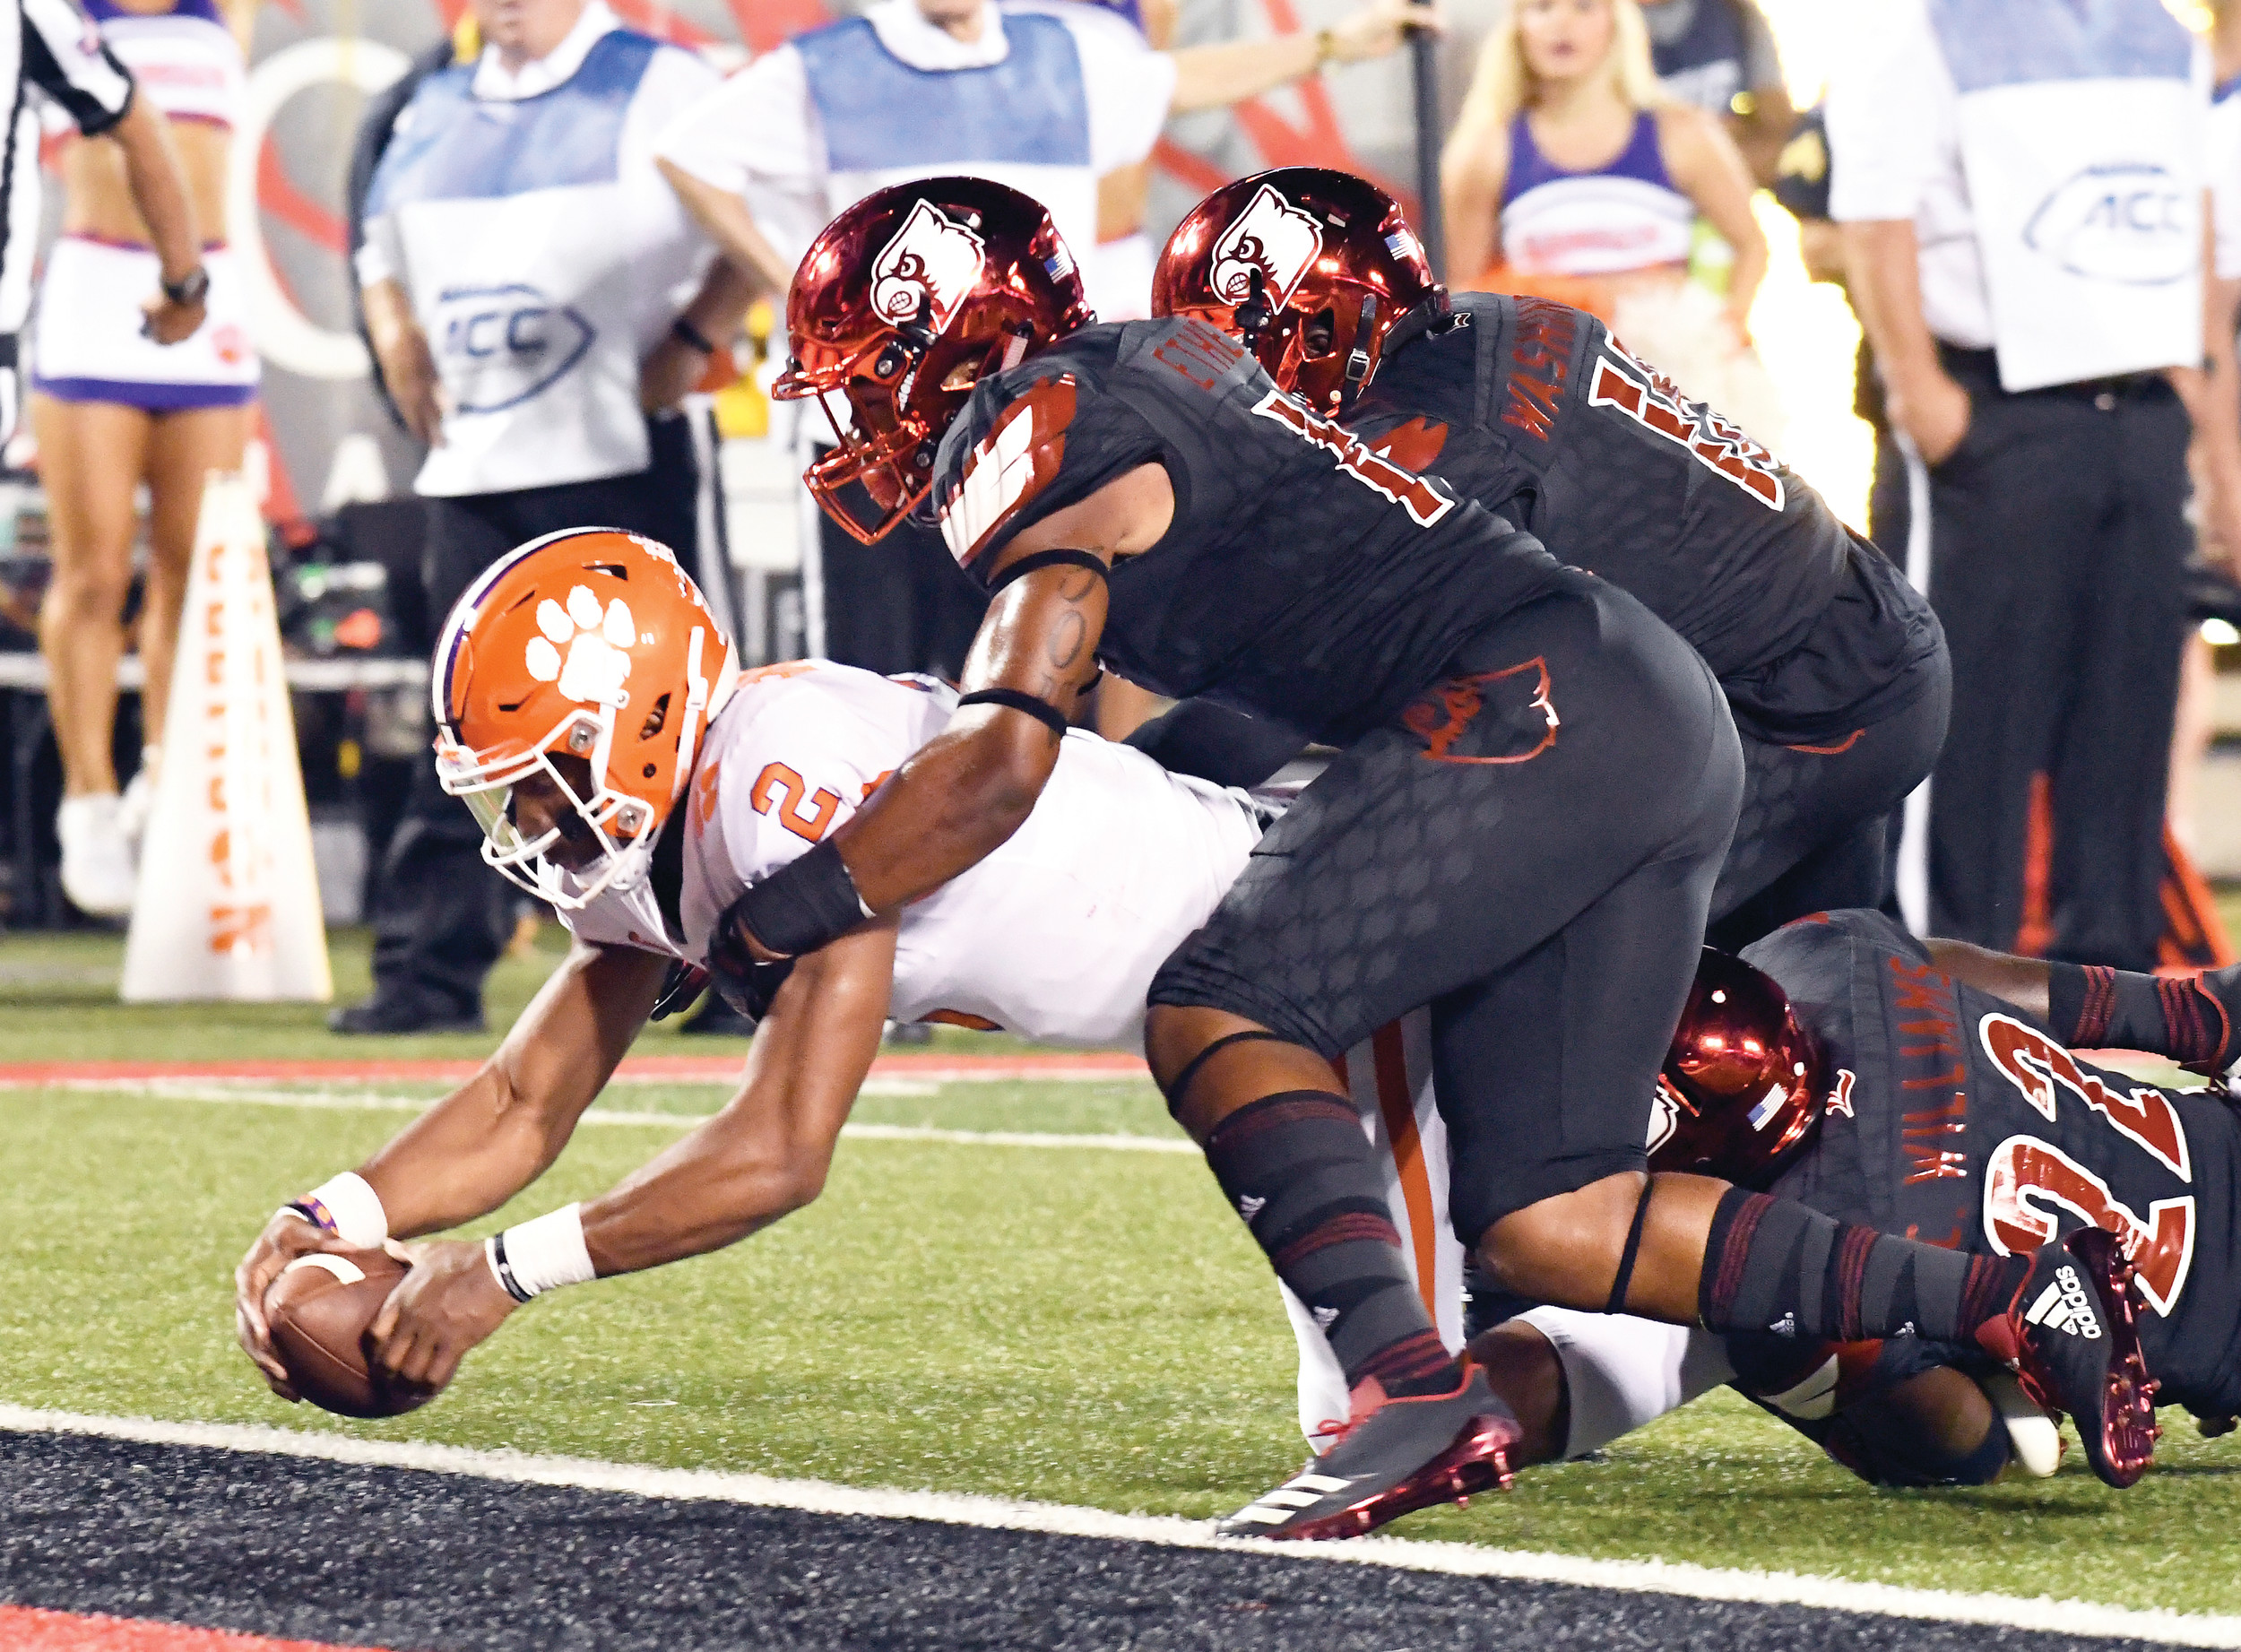 Clemson quarterback Kelly Bryant (2) is brought down by Louisville's Dorian Etheridge, front right, and Trumaine Washington (15) as he crosses the goal line during the Tigers' 47-21 victory on Saturday in Louisville, Kentucky.